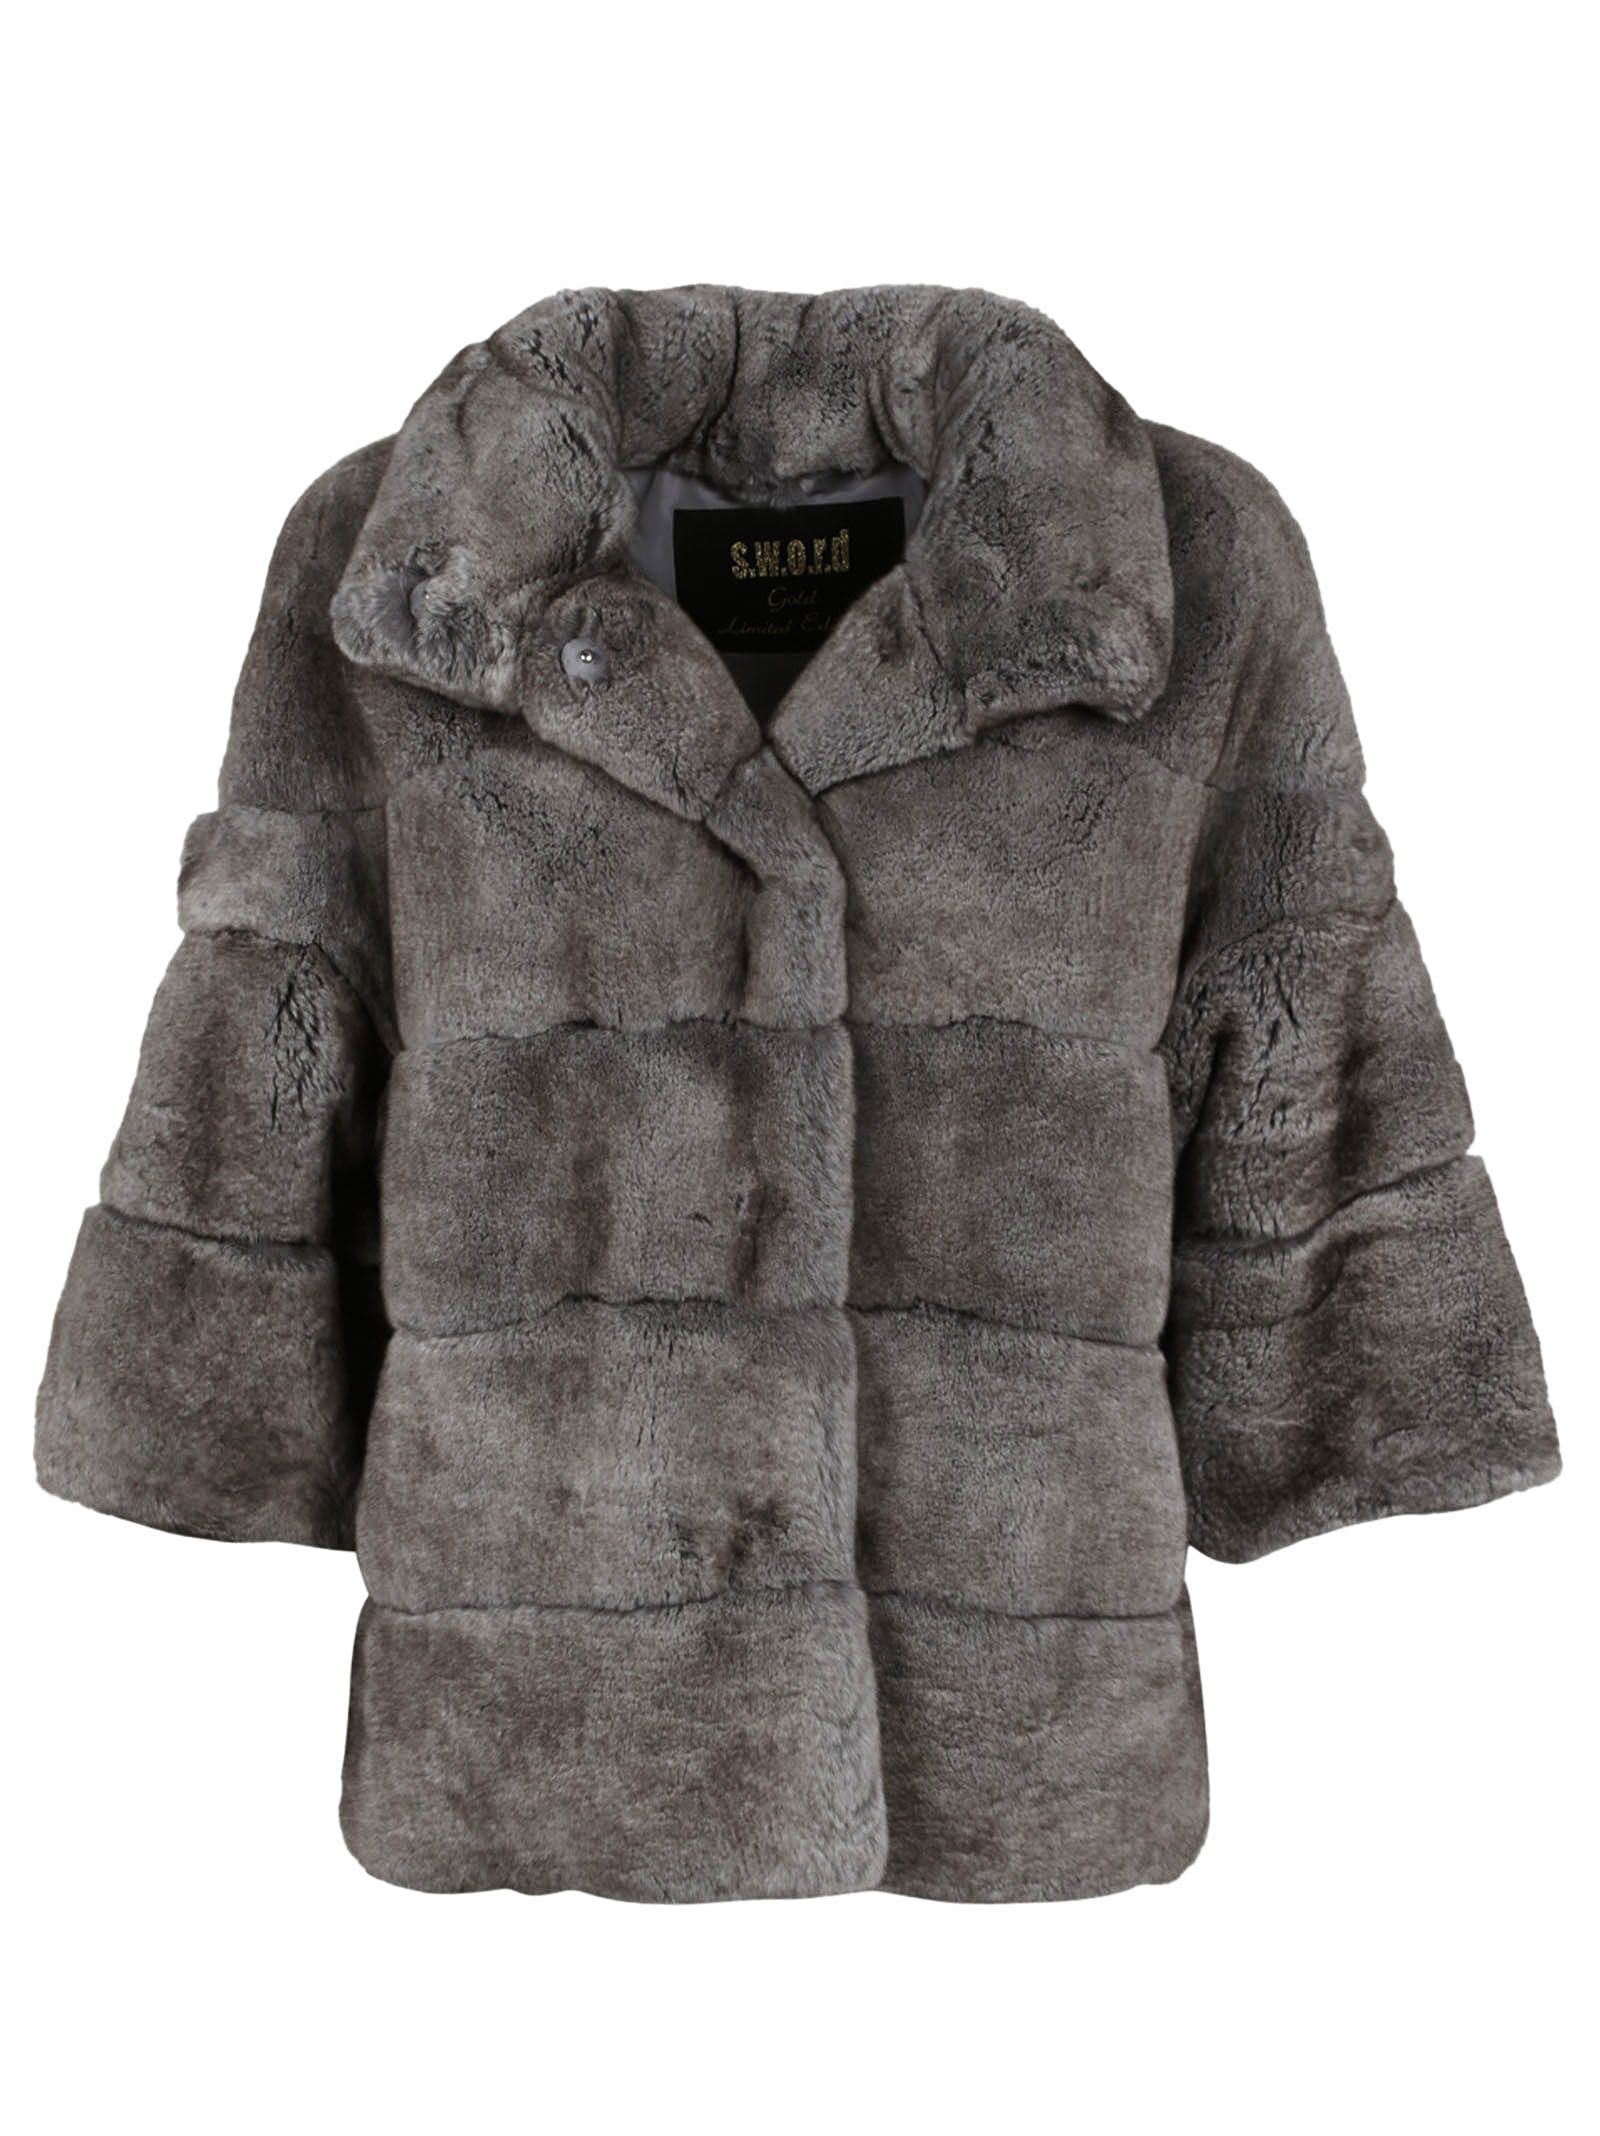 S.w.o.r.d. 6.6. 44 Rabbit Fur Jacket